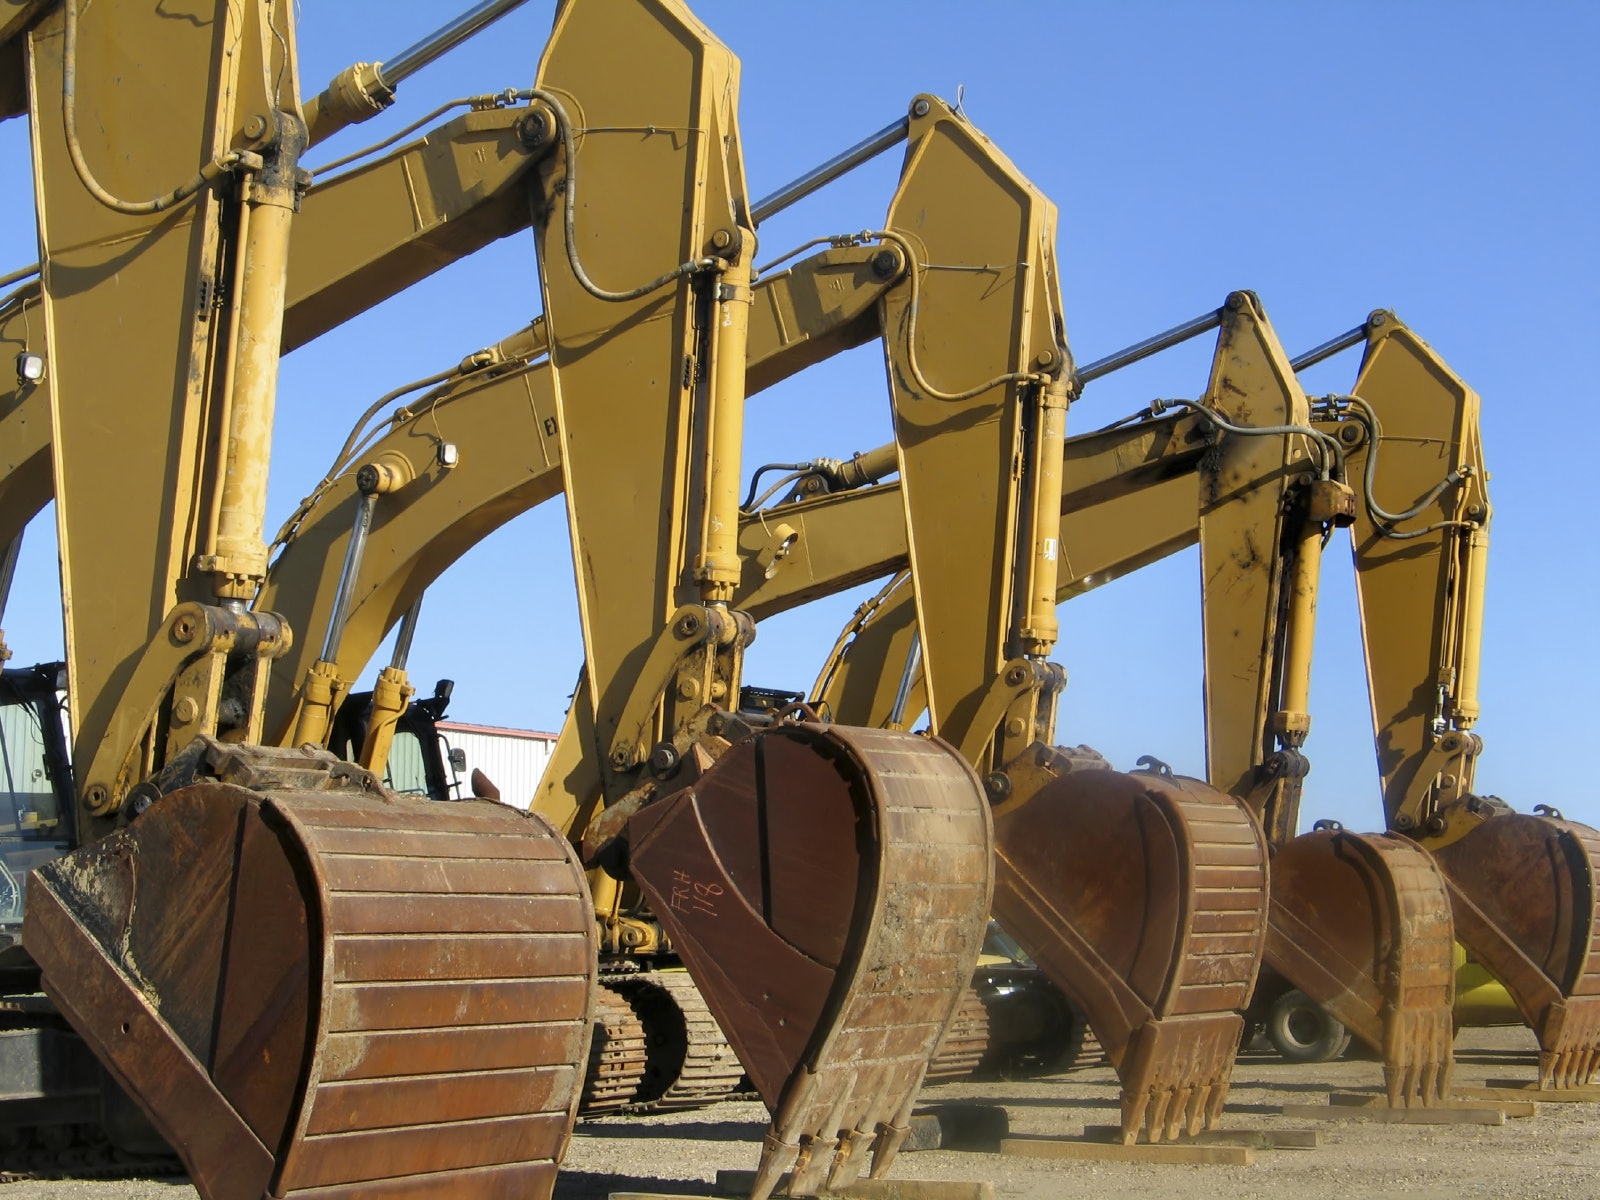 Guidance for Construction Equipment Rental - Questions to Ask Before Renting